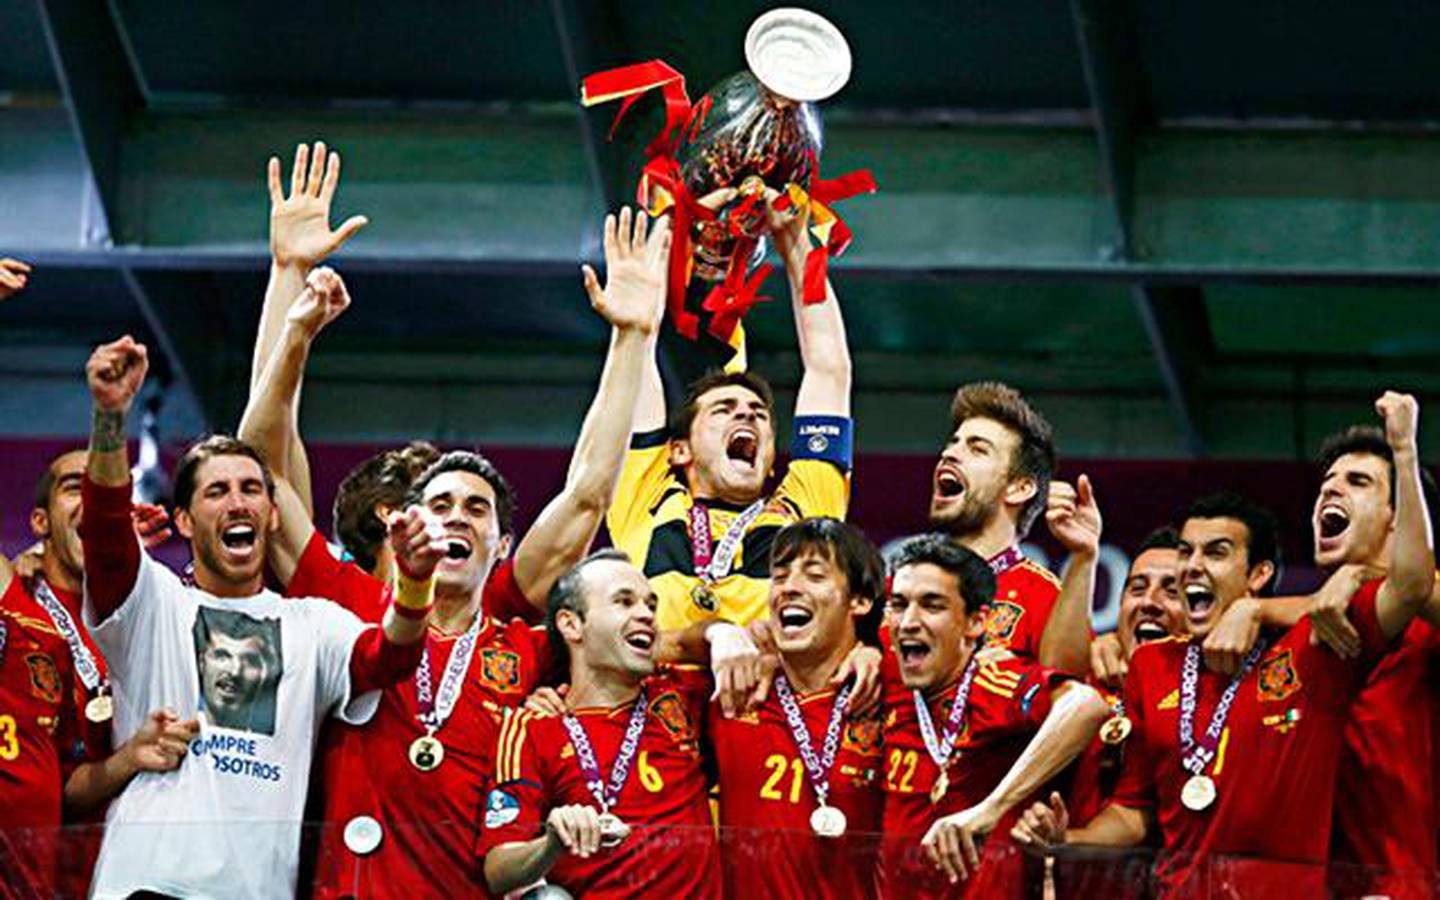 Spain's Iker Casillas lifts up the trophy after defeating Italy to win the Euro 2012 final soccer match at the Olympic stadium in Kiev, July 1, 2012.      REUTERS/Kai Pfaffenbach (UKRAINE  - Tags: SPORT SOCCER TPX IMAGES OF THE DAY)